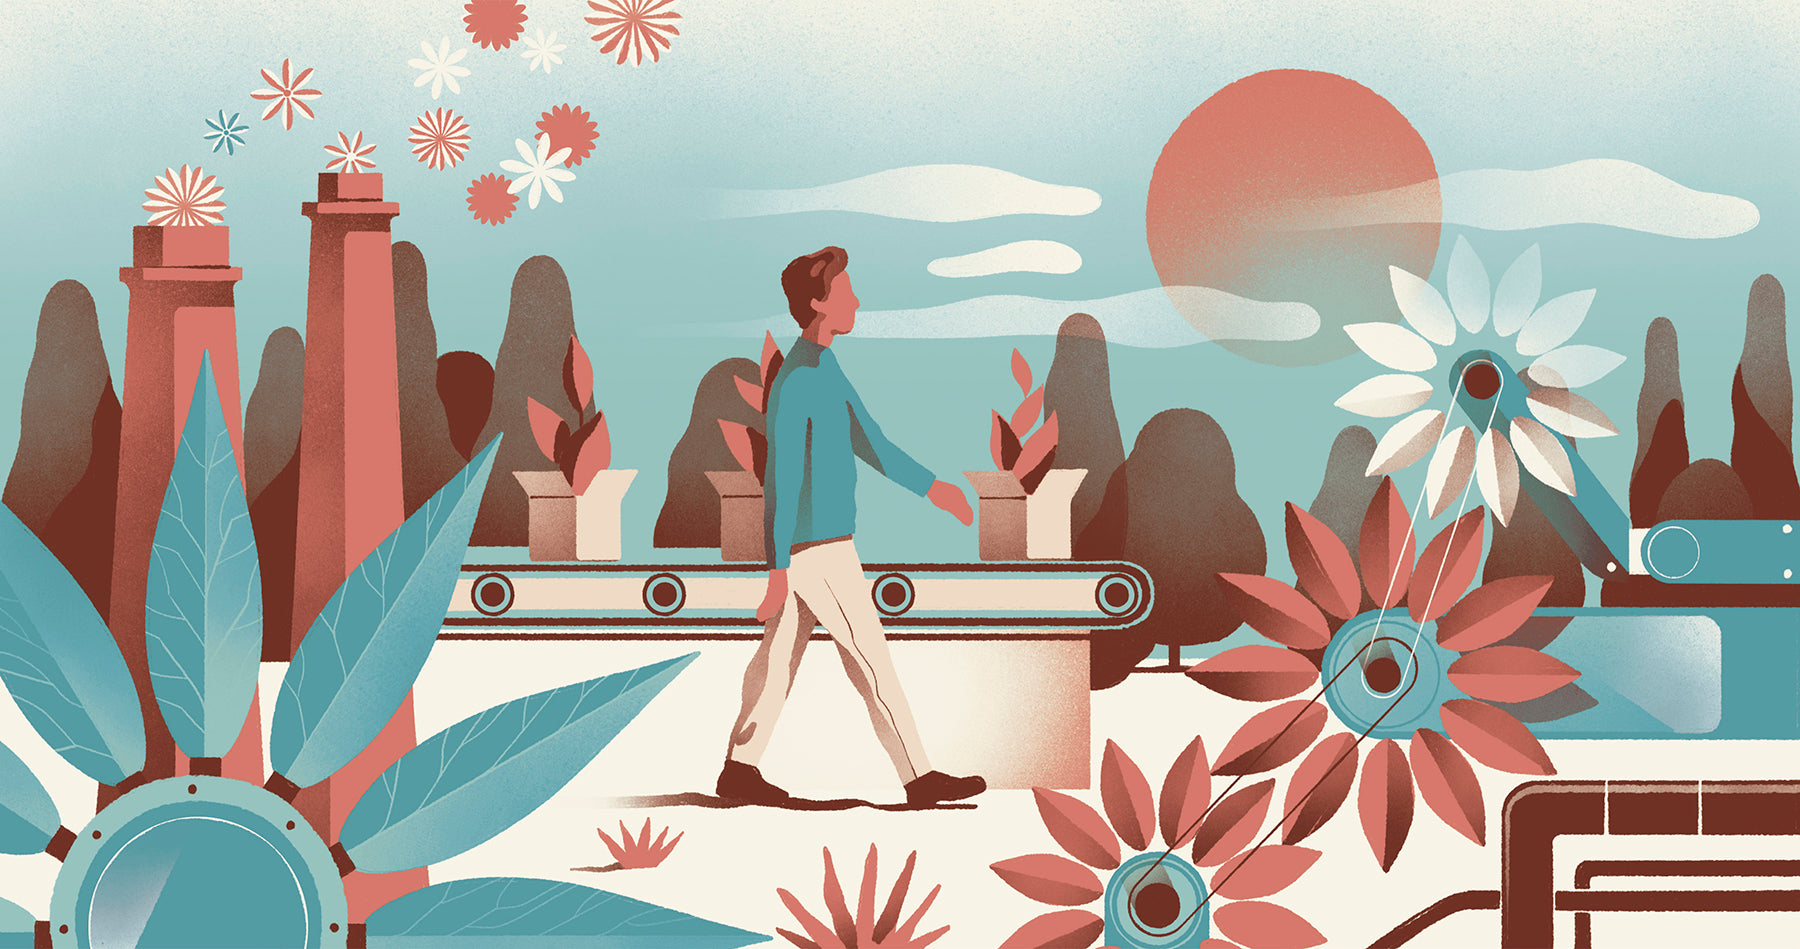 illustration of a young man walking through a scene that reflects sustainable living. plants surround him and sustainable products are on a conveyor belt around him.